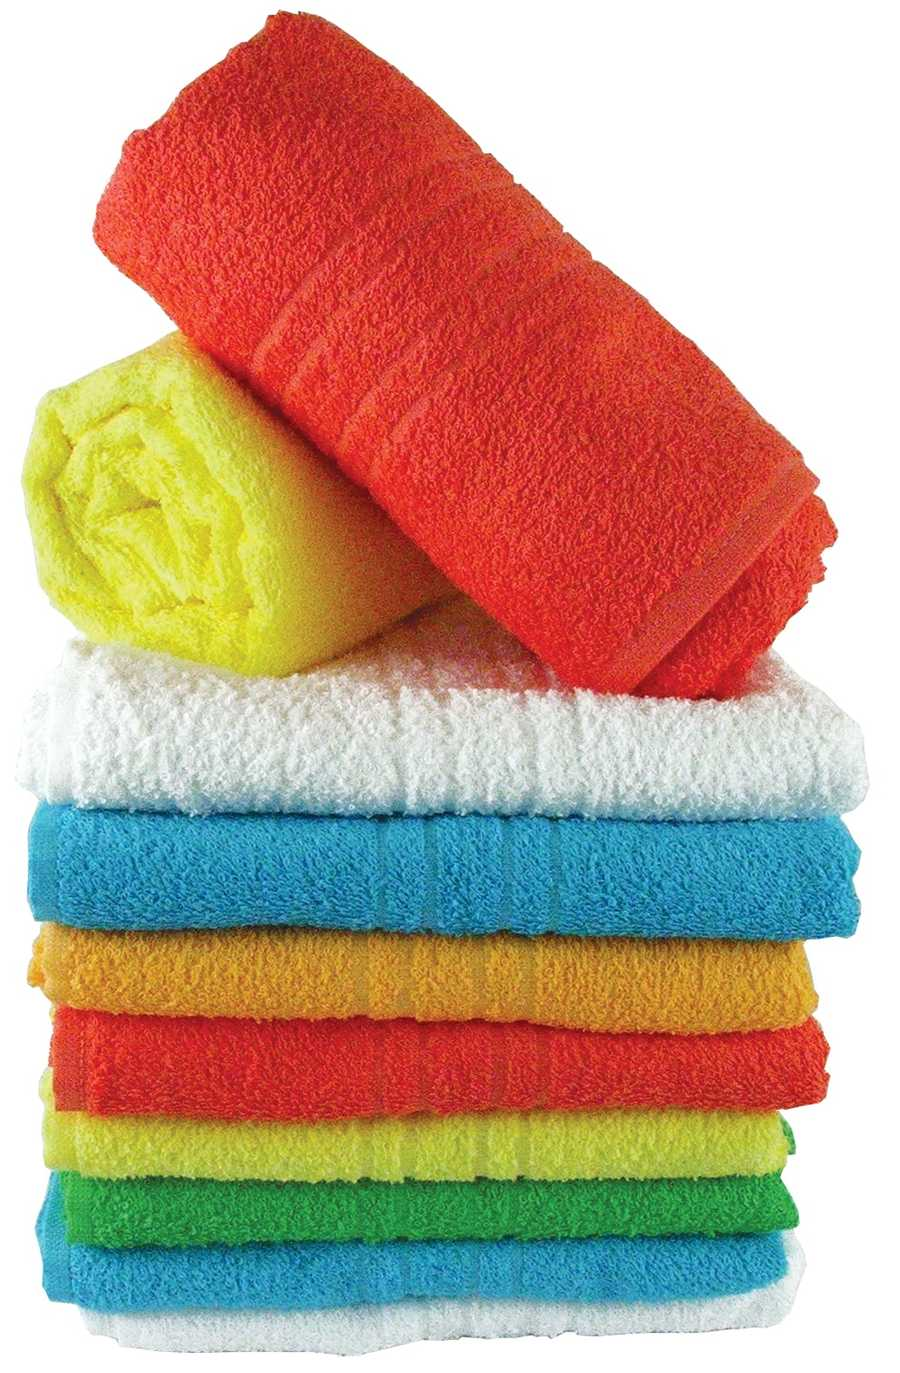 6. Use a warm washcloth to relax your jaw: Relax your jaw muscles at night by holding a warm washcloth against your face near your earlobe.